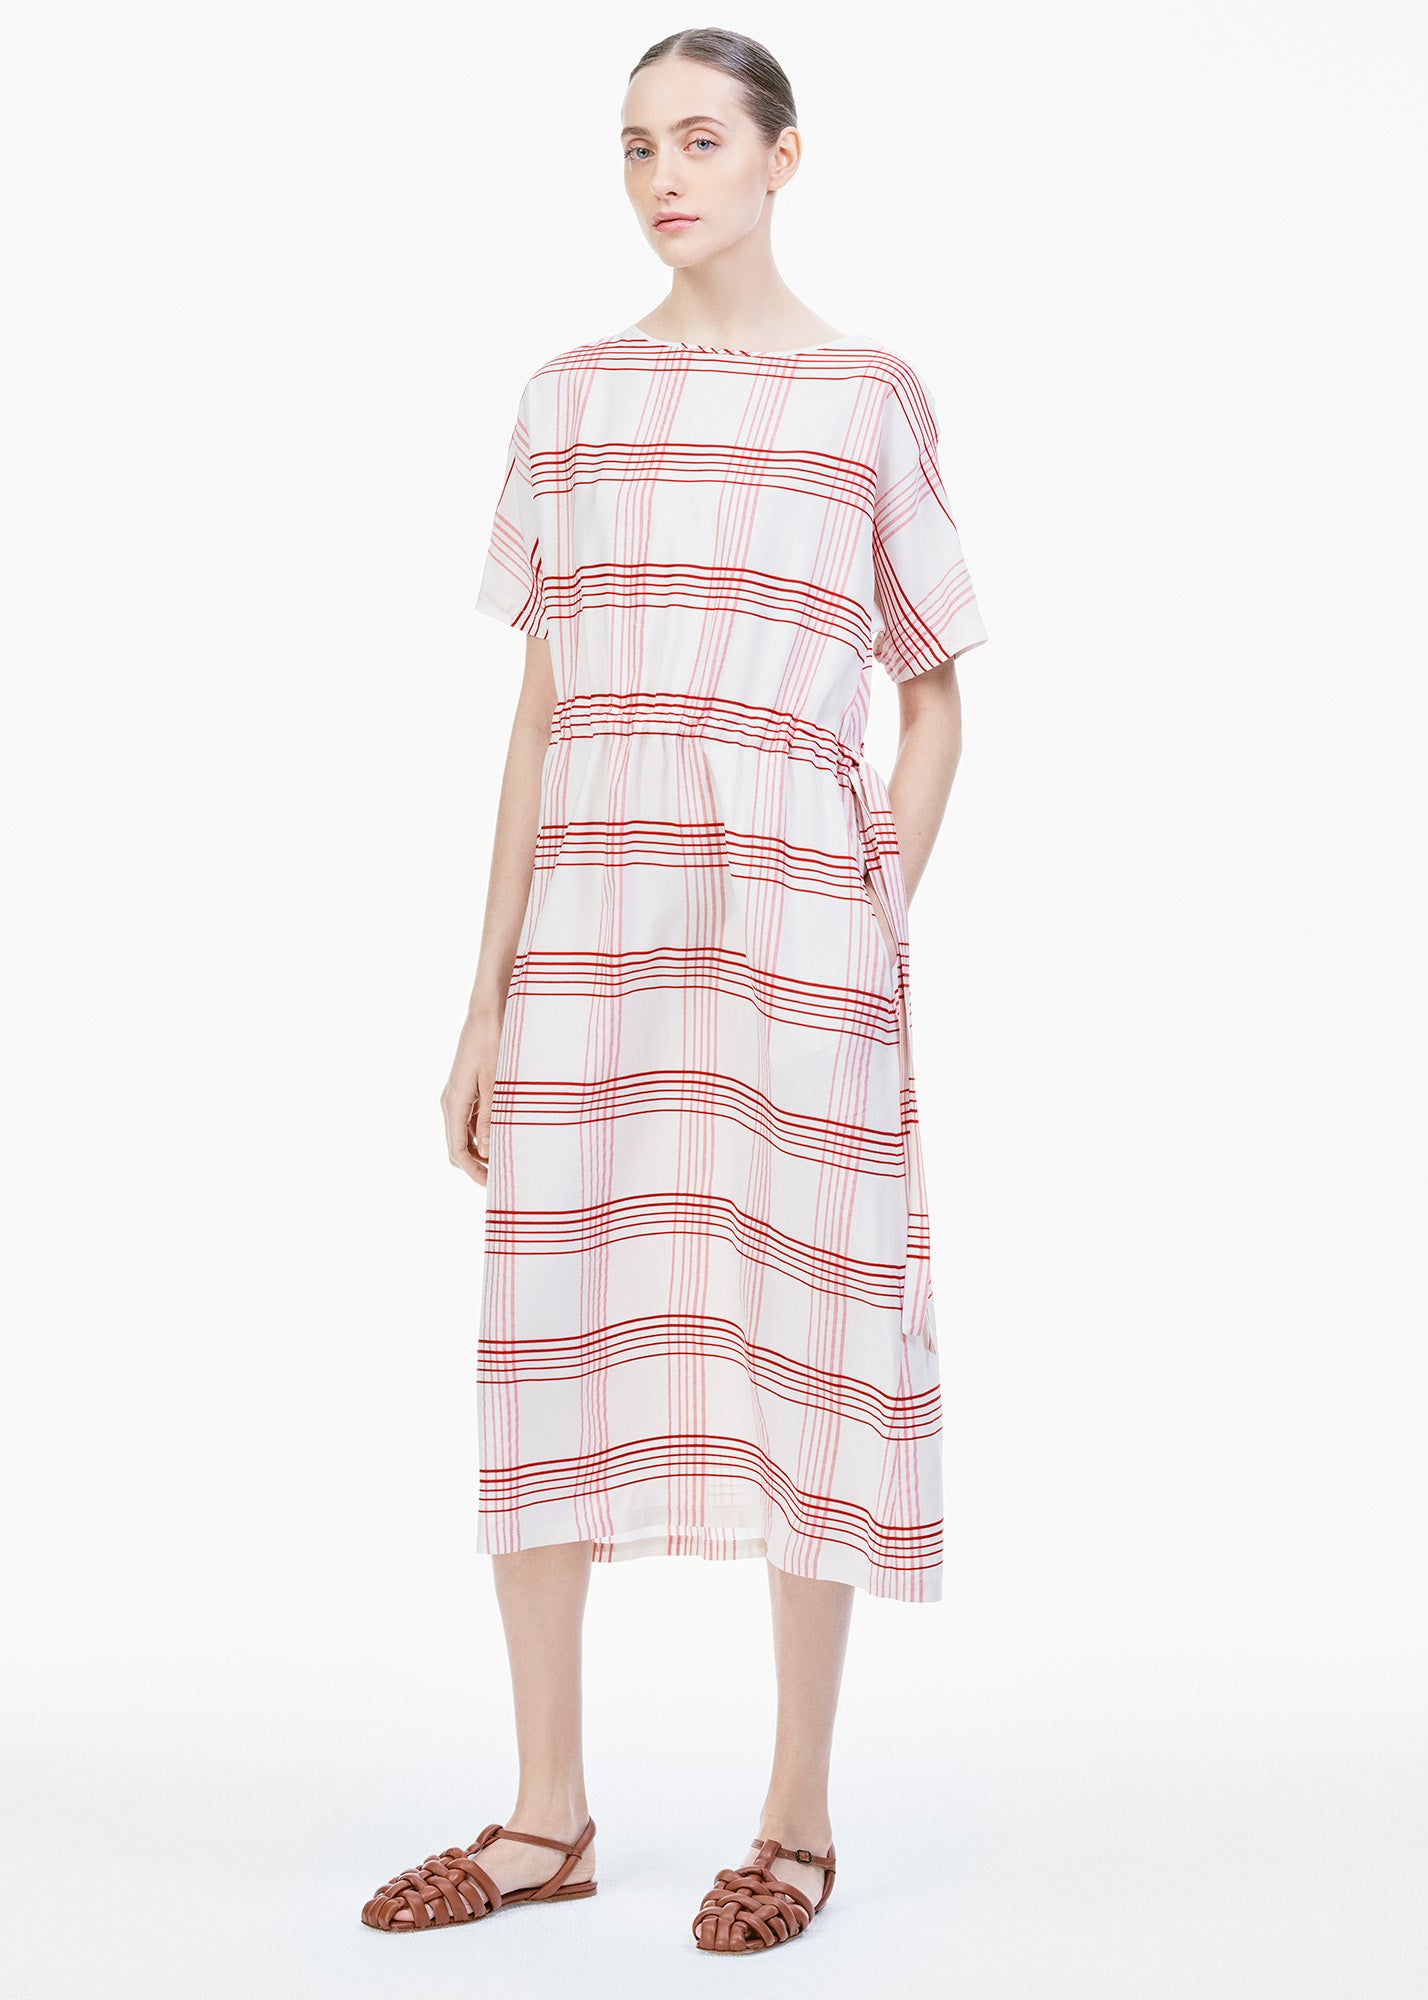 Boatneck Dress Ecru/ Red Check